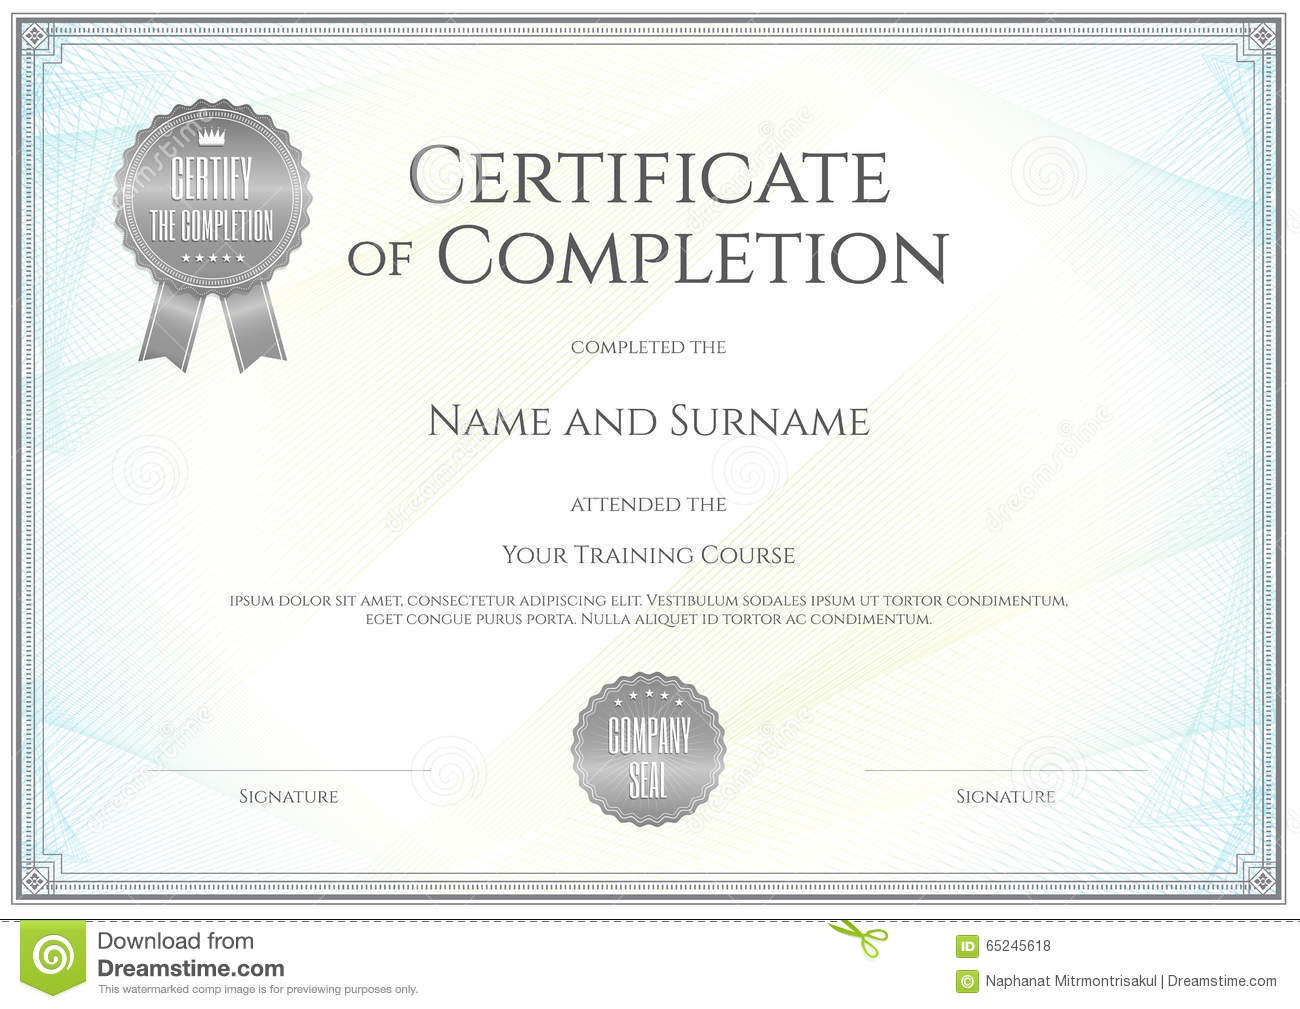 Certificate template in vector for achievement graduation comple certificate template in vector for achievement graduation comple alramifo Choice Image